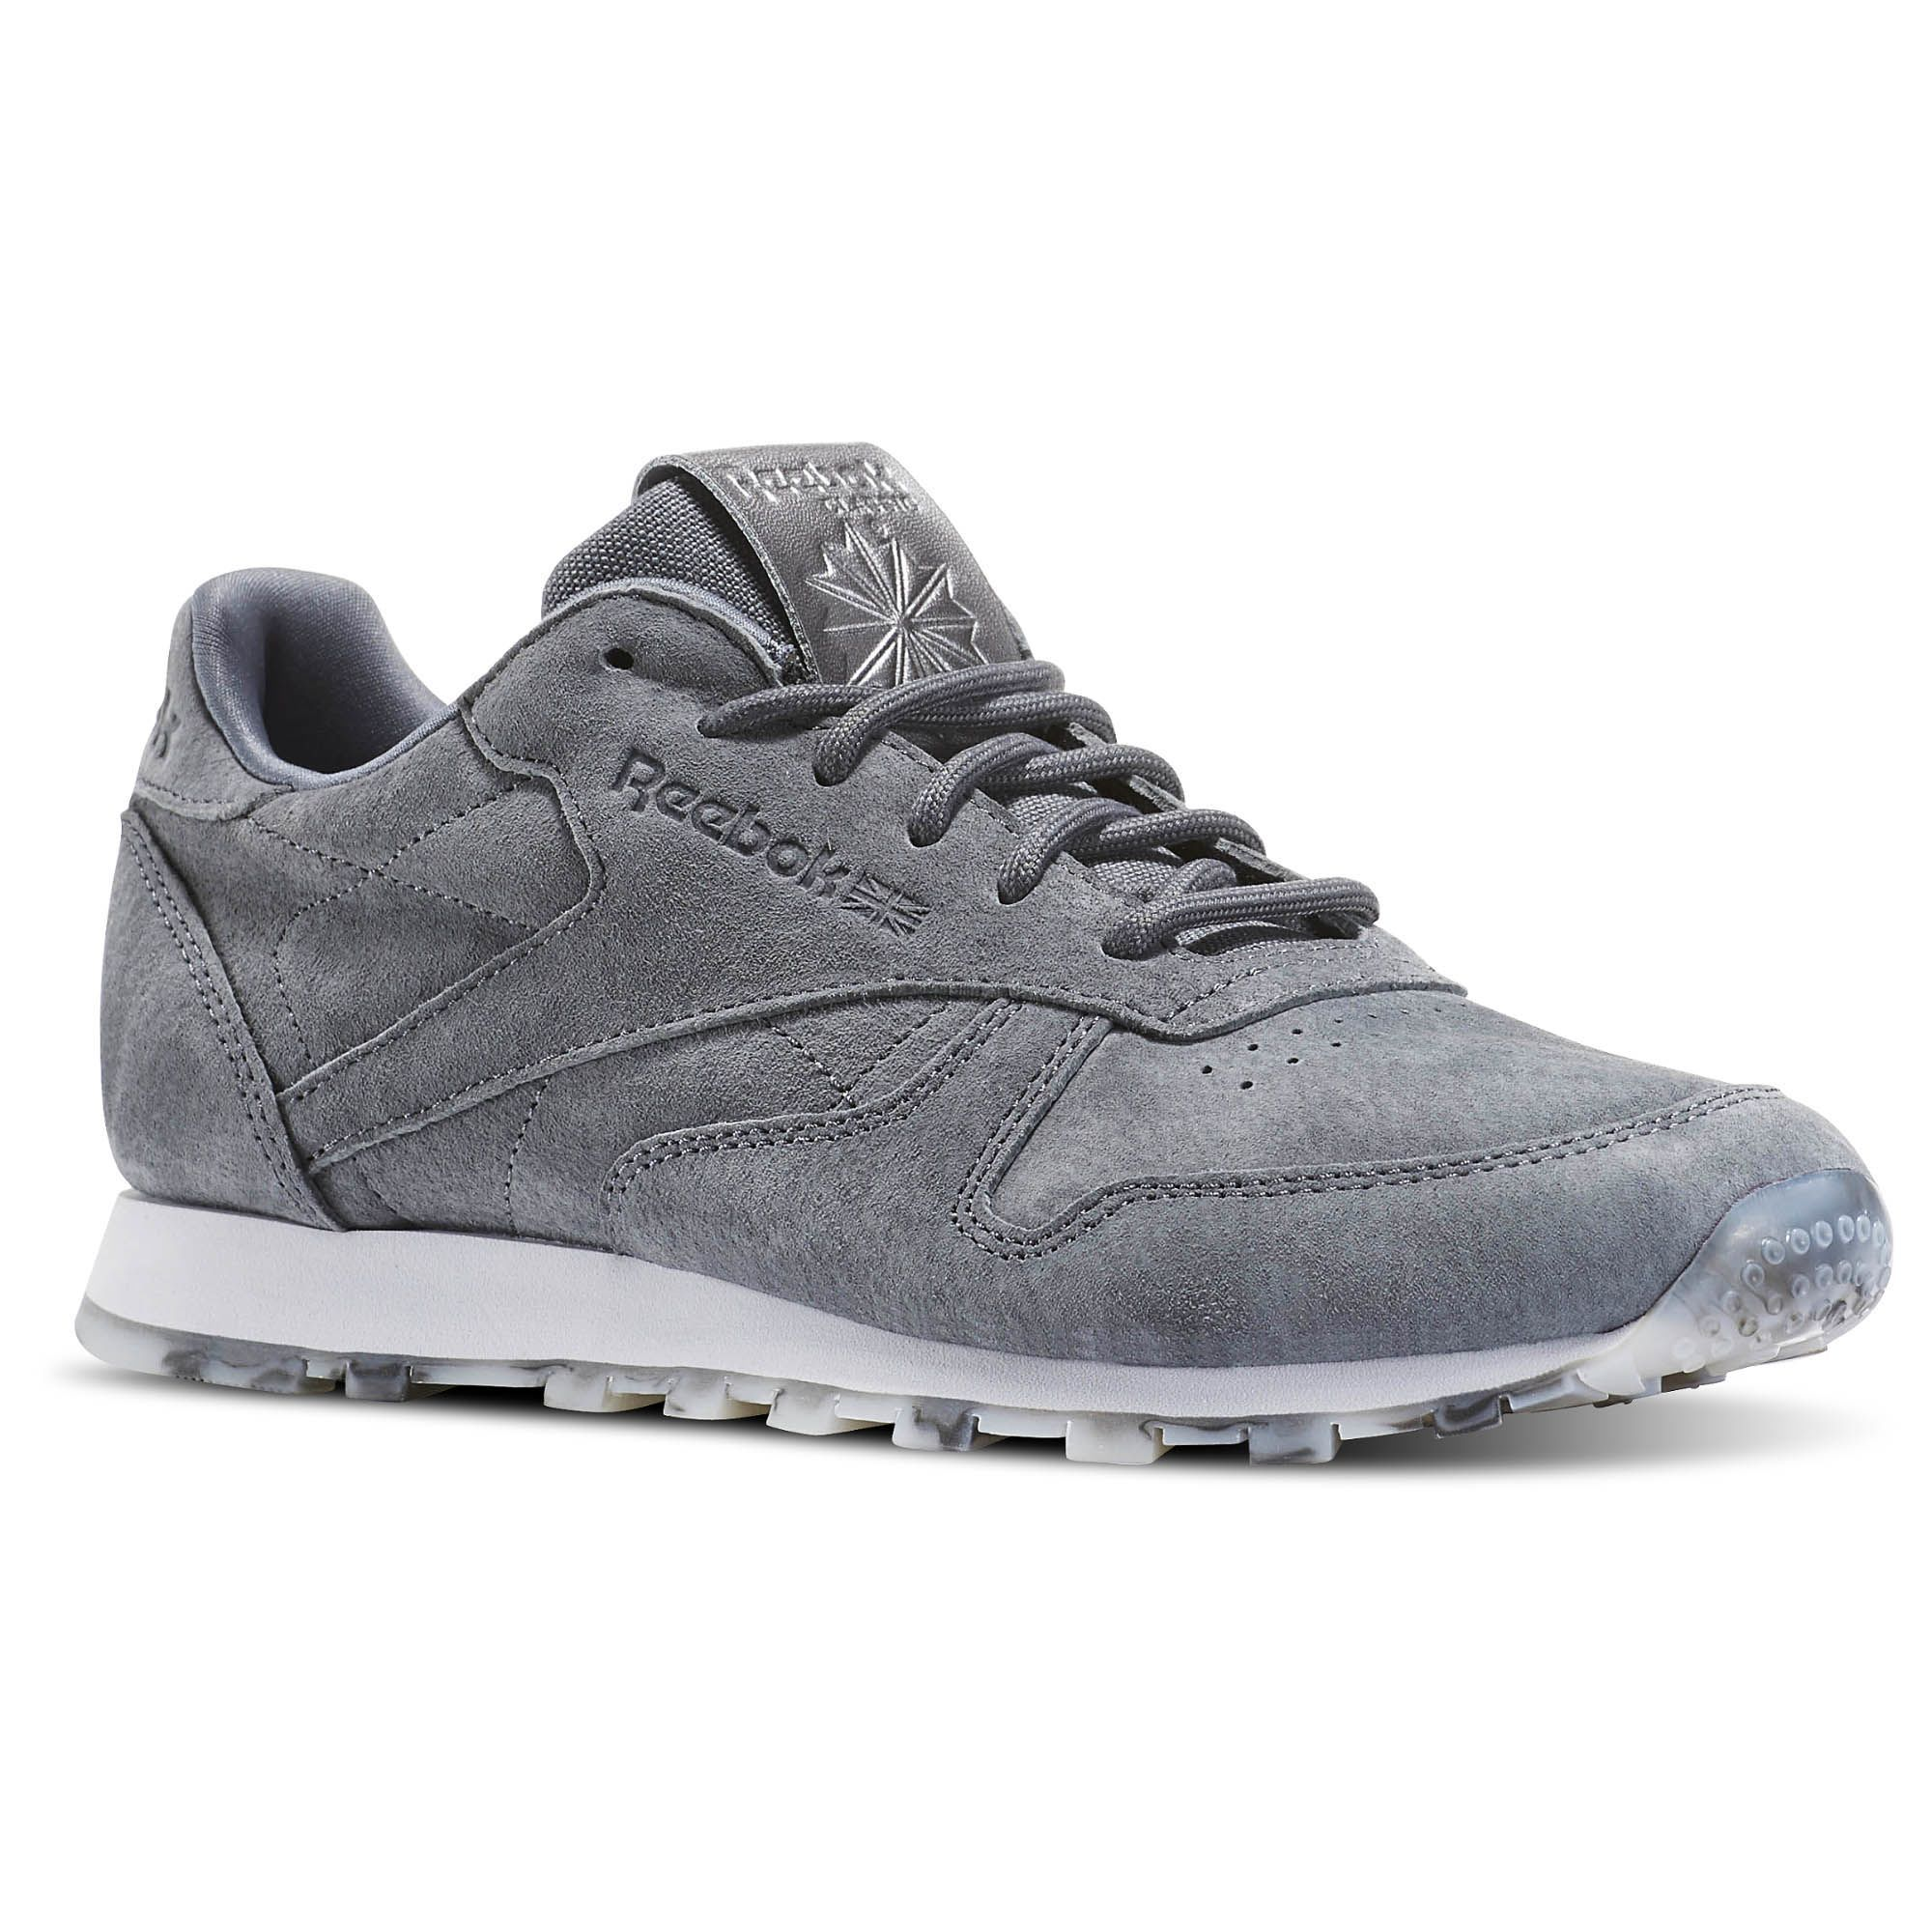 Reebok Classic Leather SHMR | Sneaker Luv | Reebok, Shoes